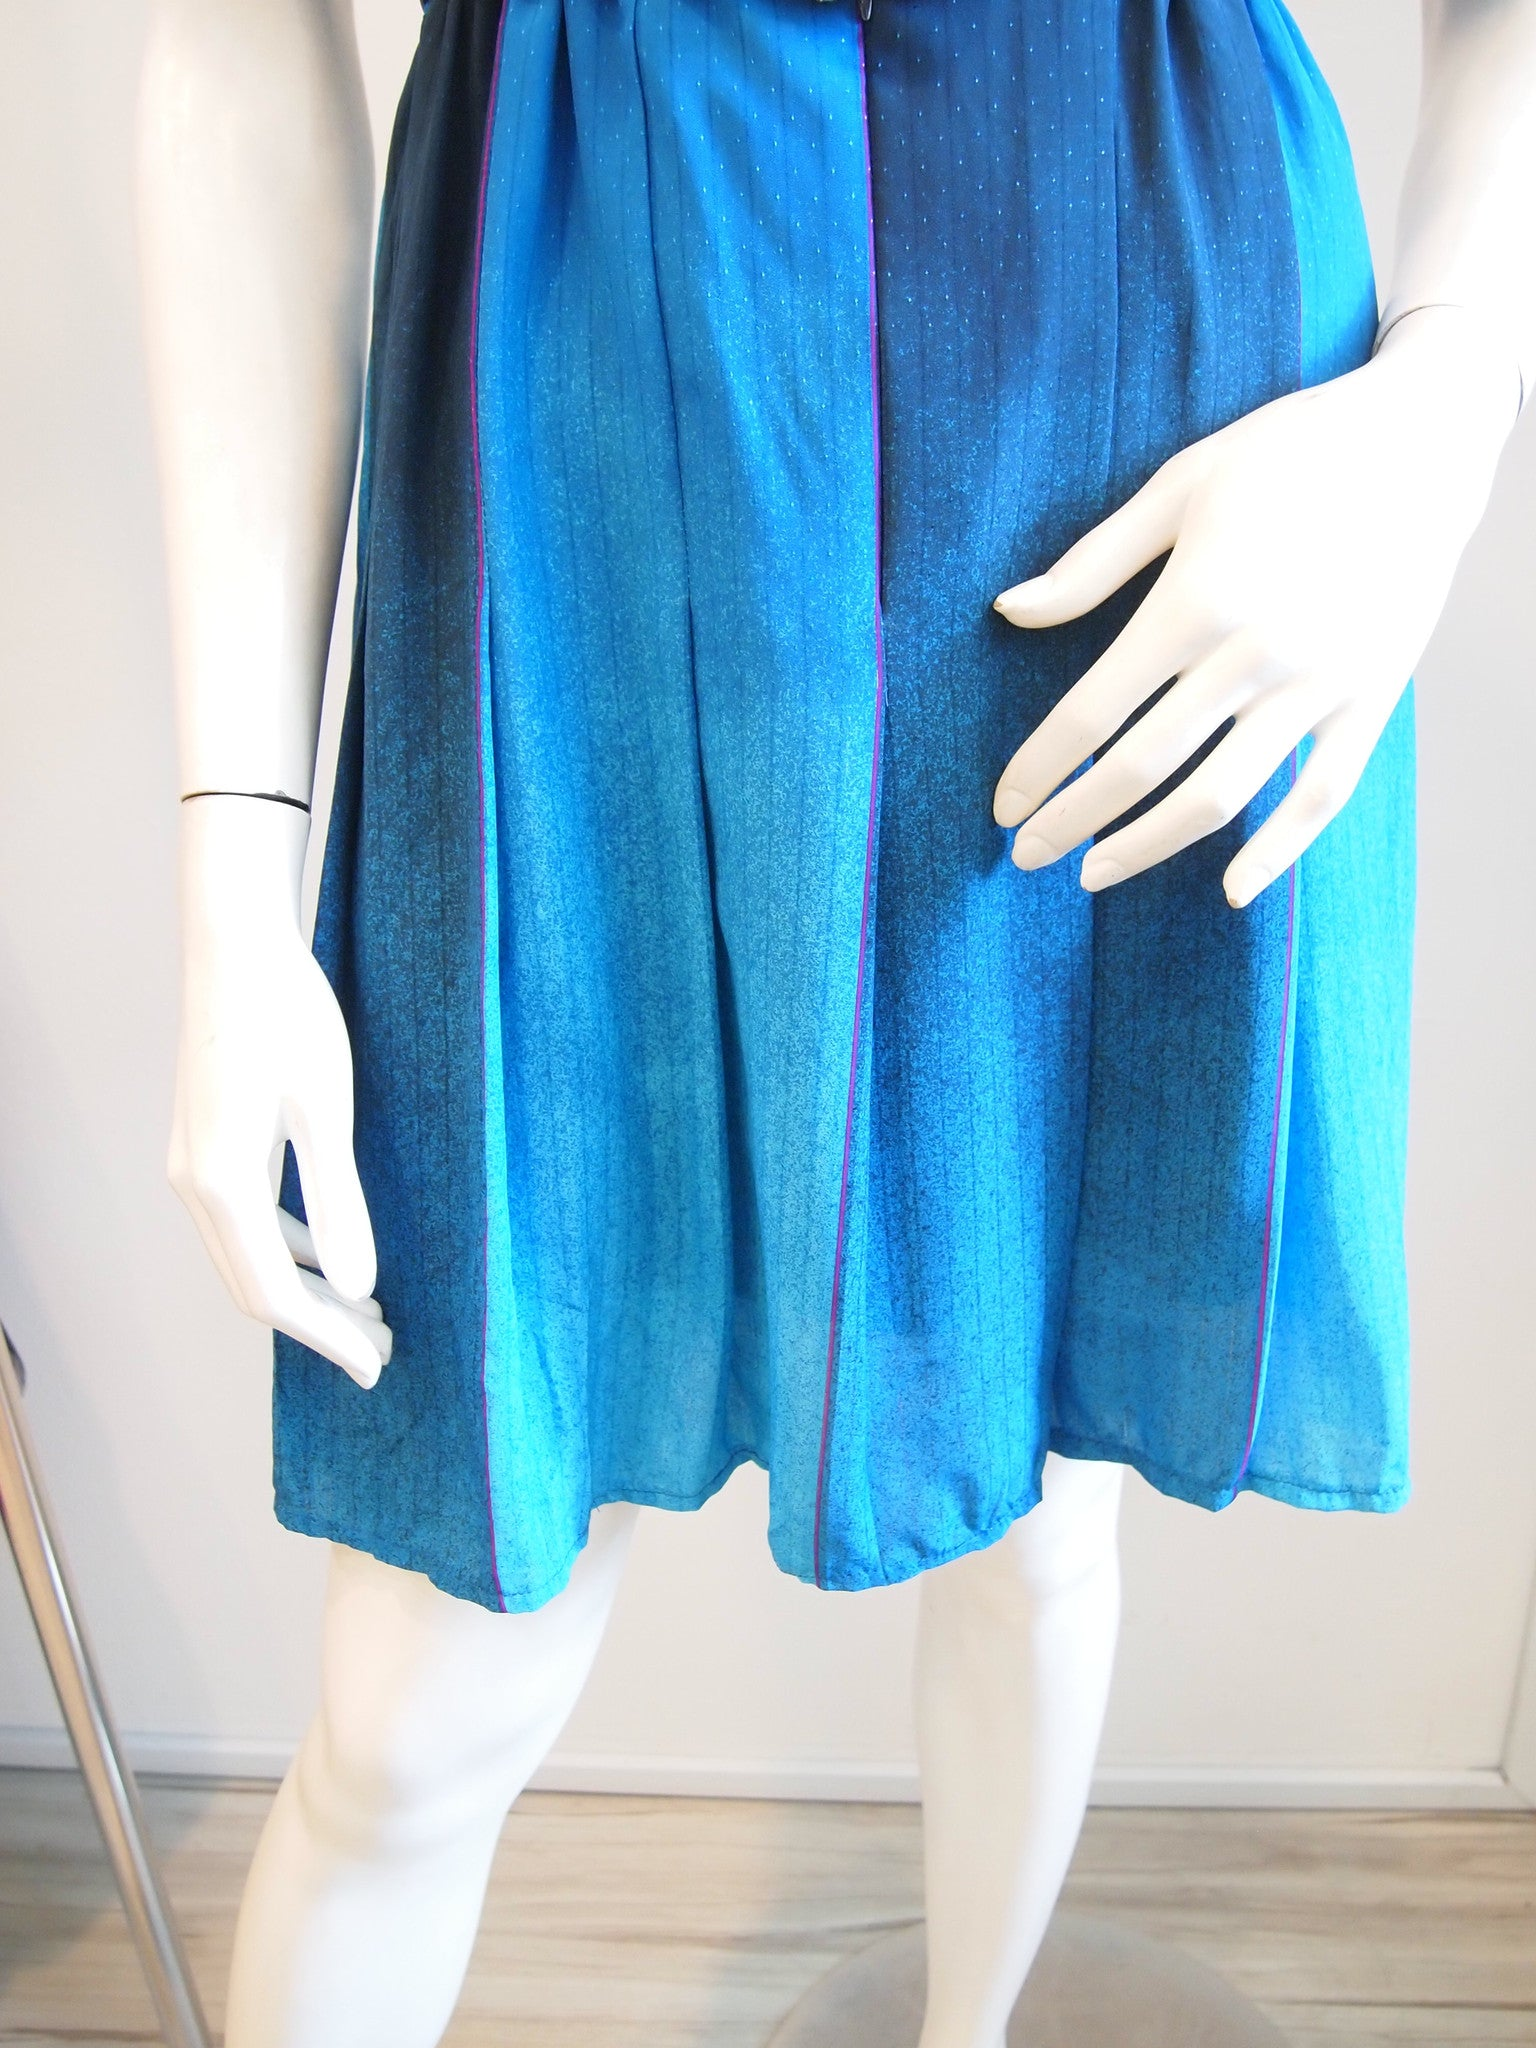 Shades of blue dress vintage